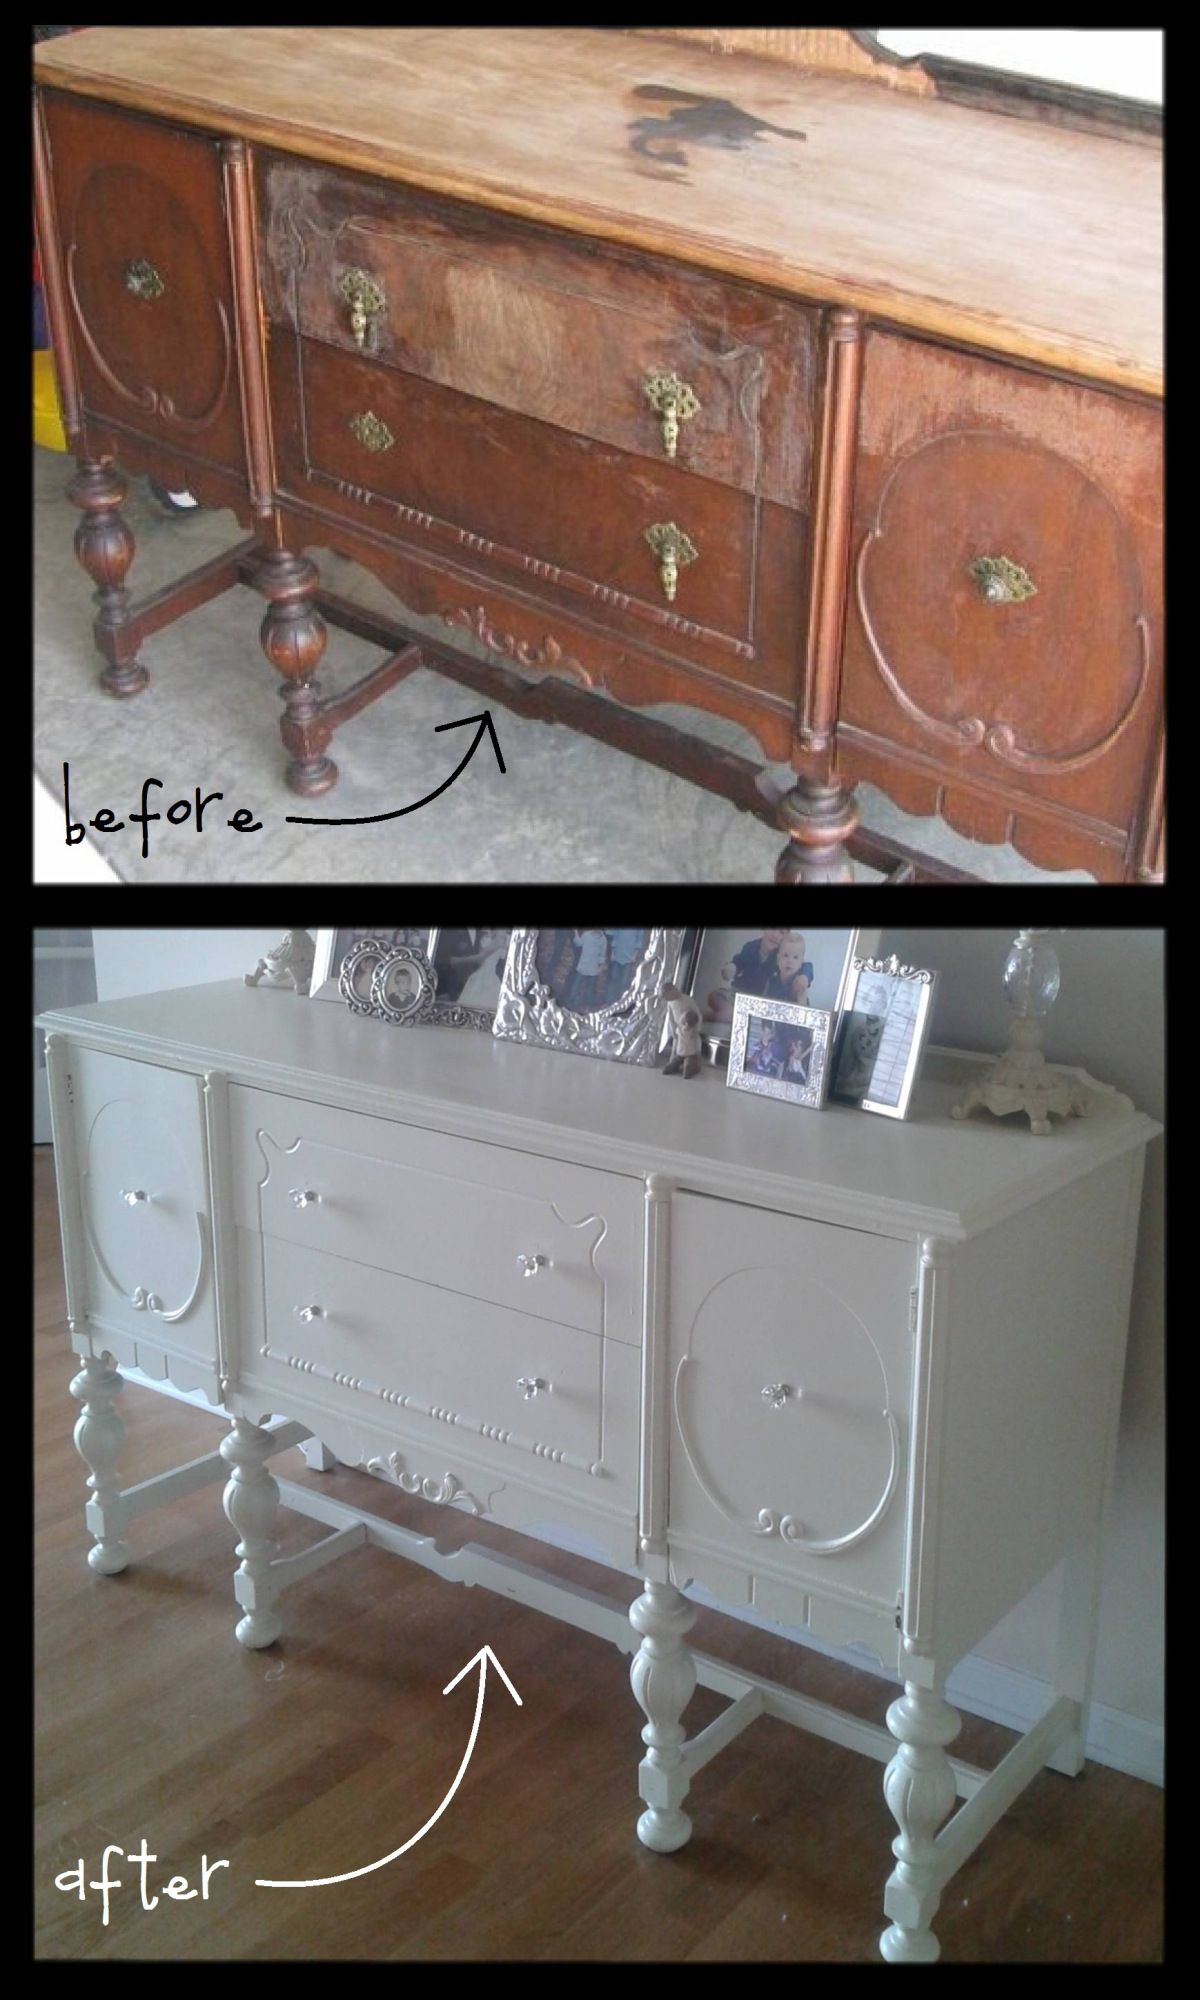 wallpaper owner image used craigslist stylish awesome furniture by